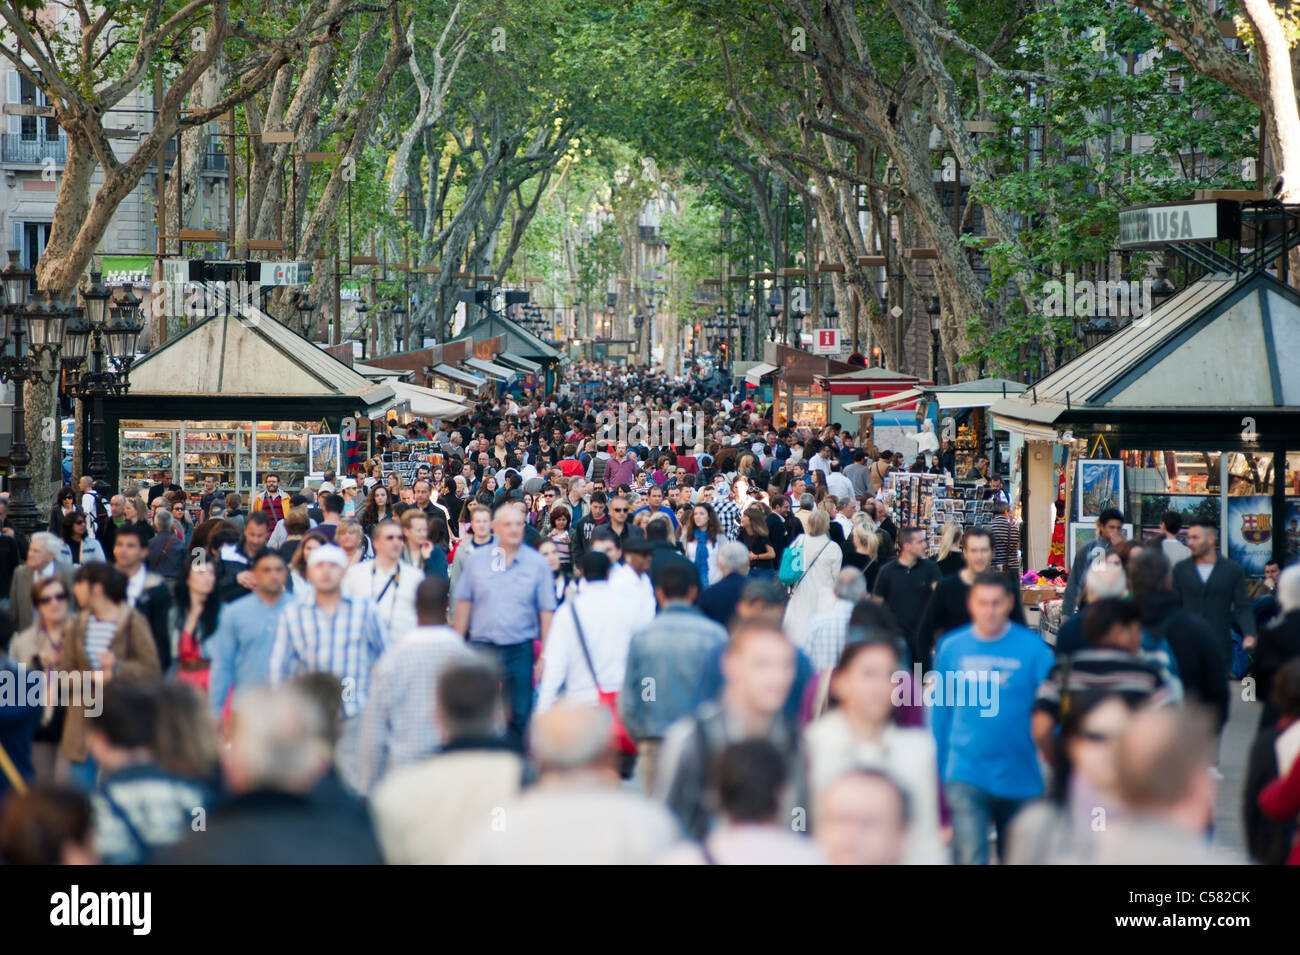 View of Las Ramblas of Barcelona crowded with people, Spain - Stock Image